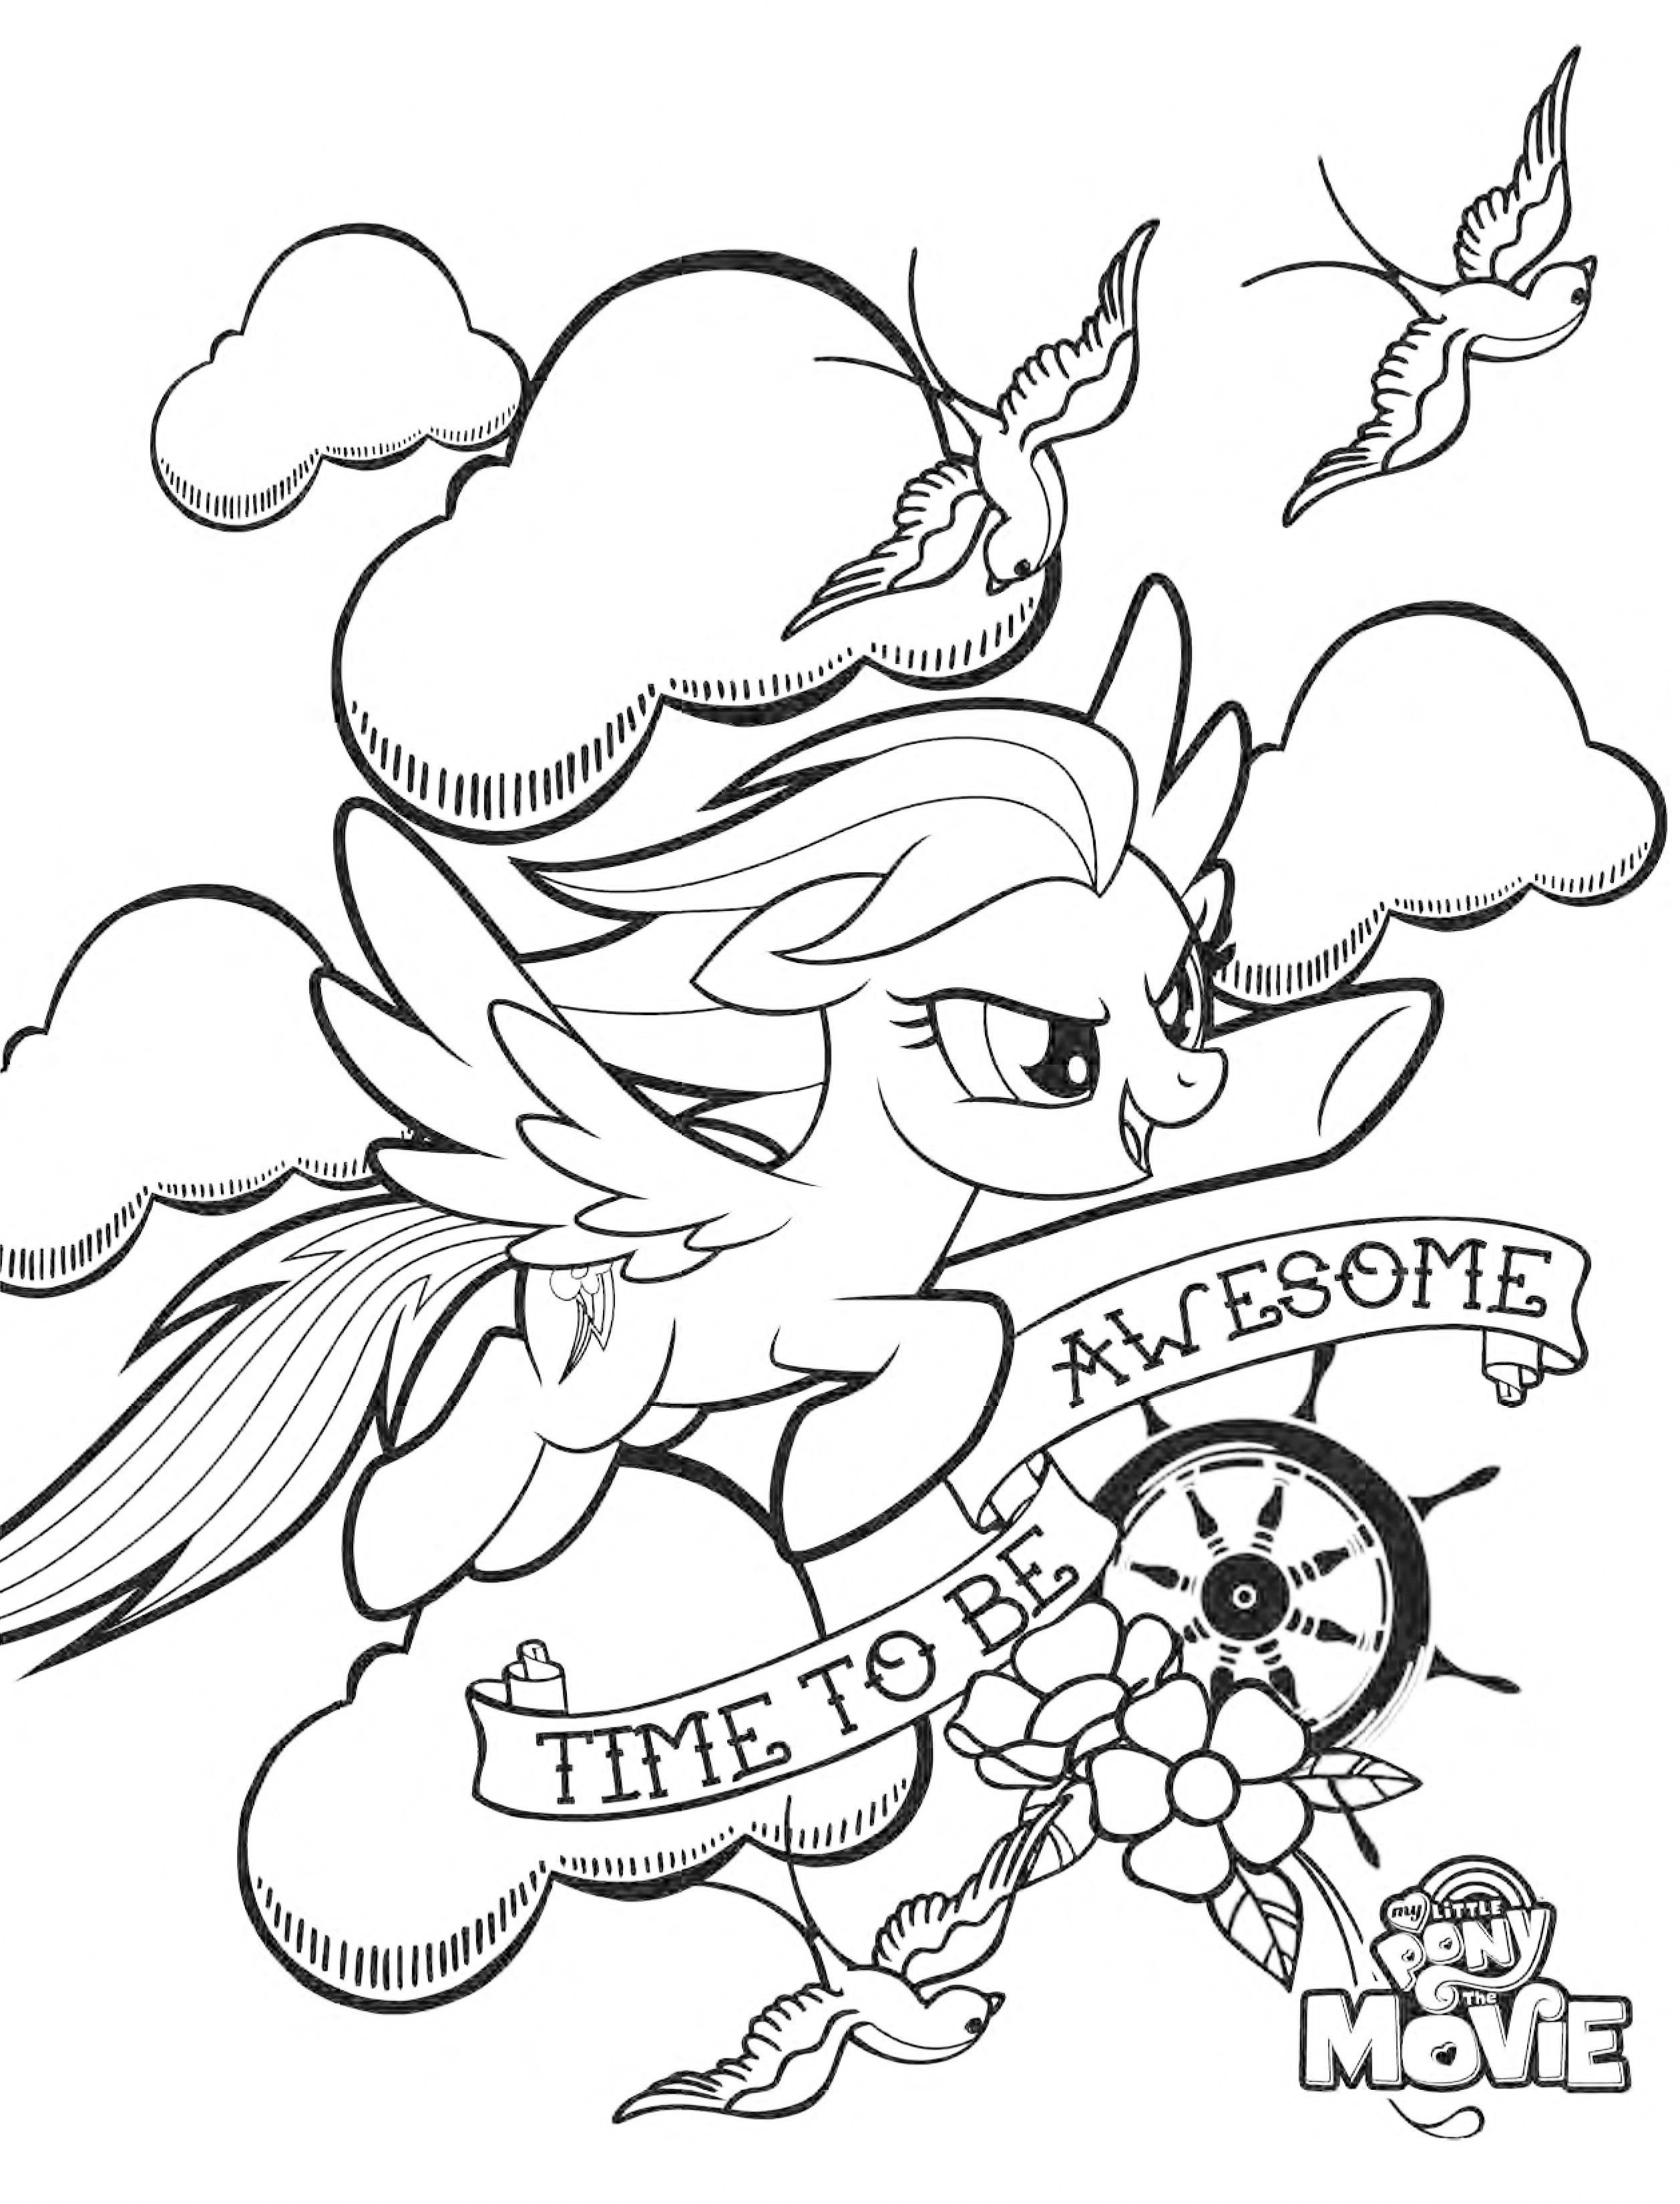 Pin By Fernanda Caroline Quevedo On My Little Pony Coloring Pages Printables My Little Pony Coloring Princess Coloring Pages Mermaid Coloring Pages